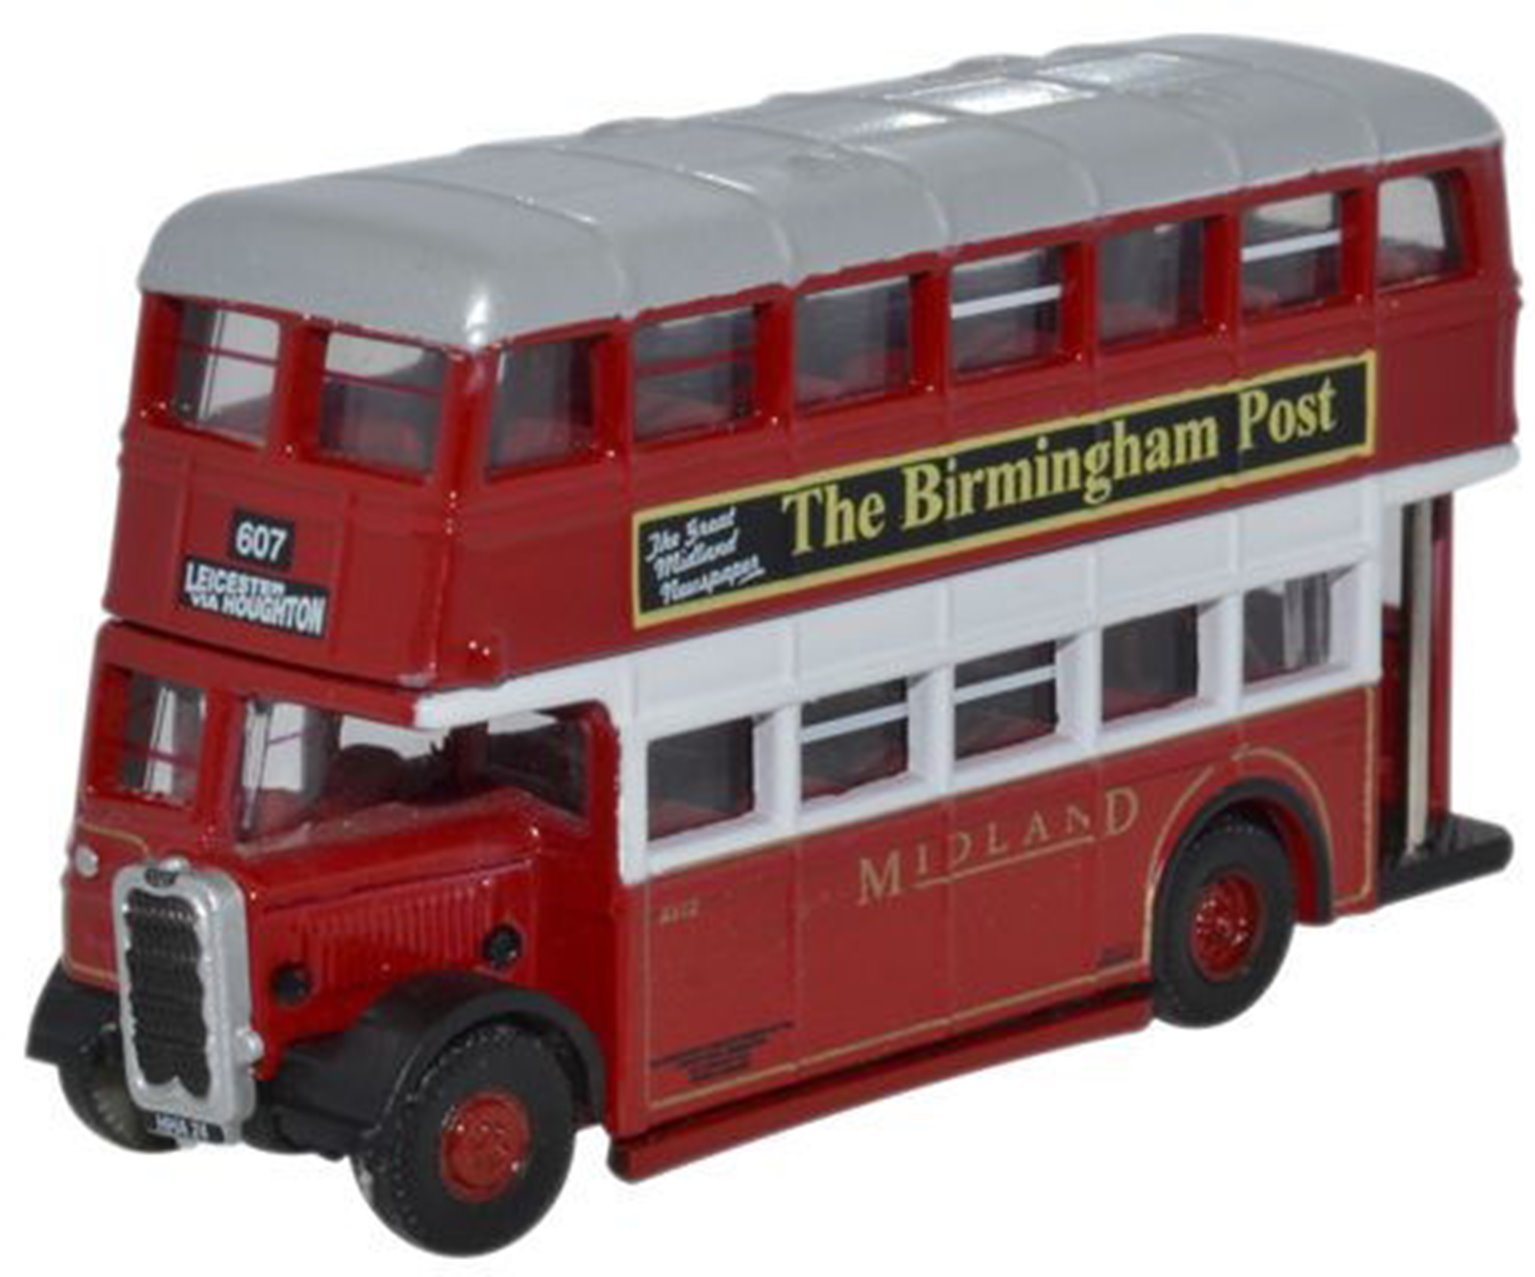 Oxford Diecast NUT003_1 Guy Arab Utility Midland Red - Correct Colour